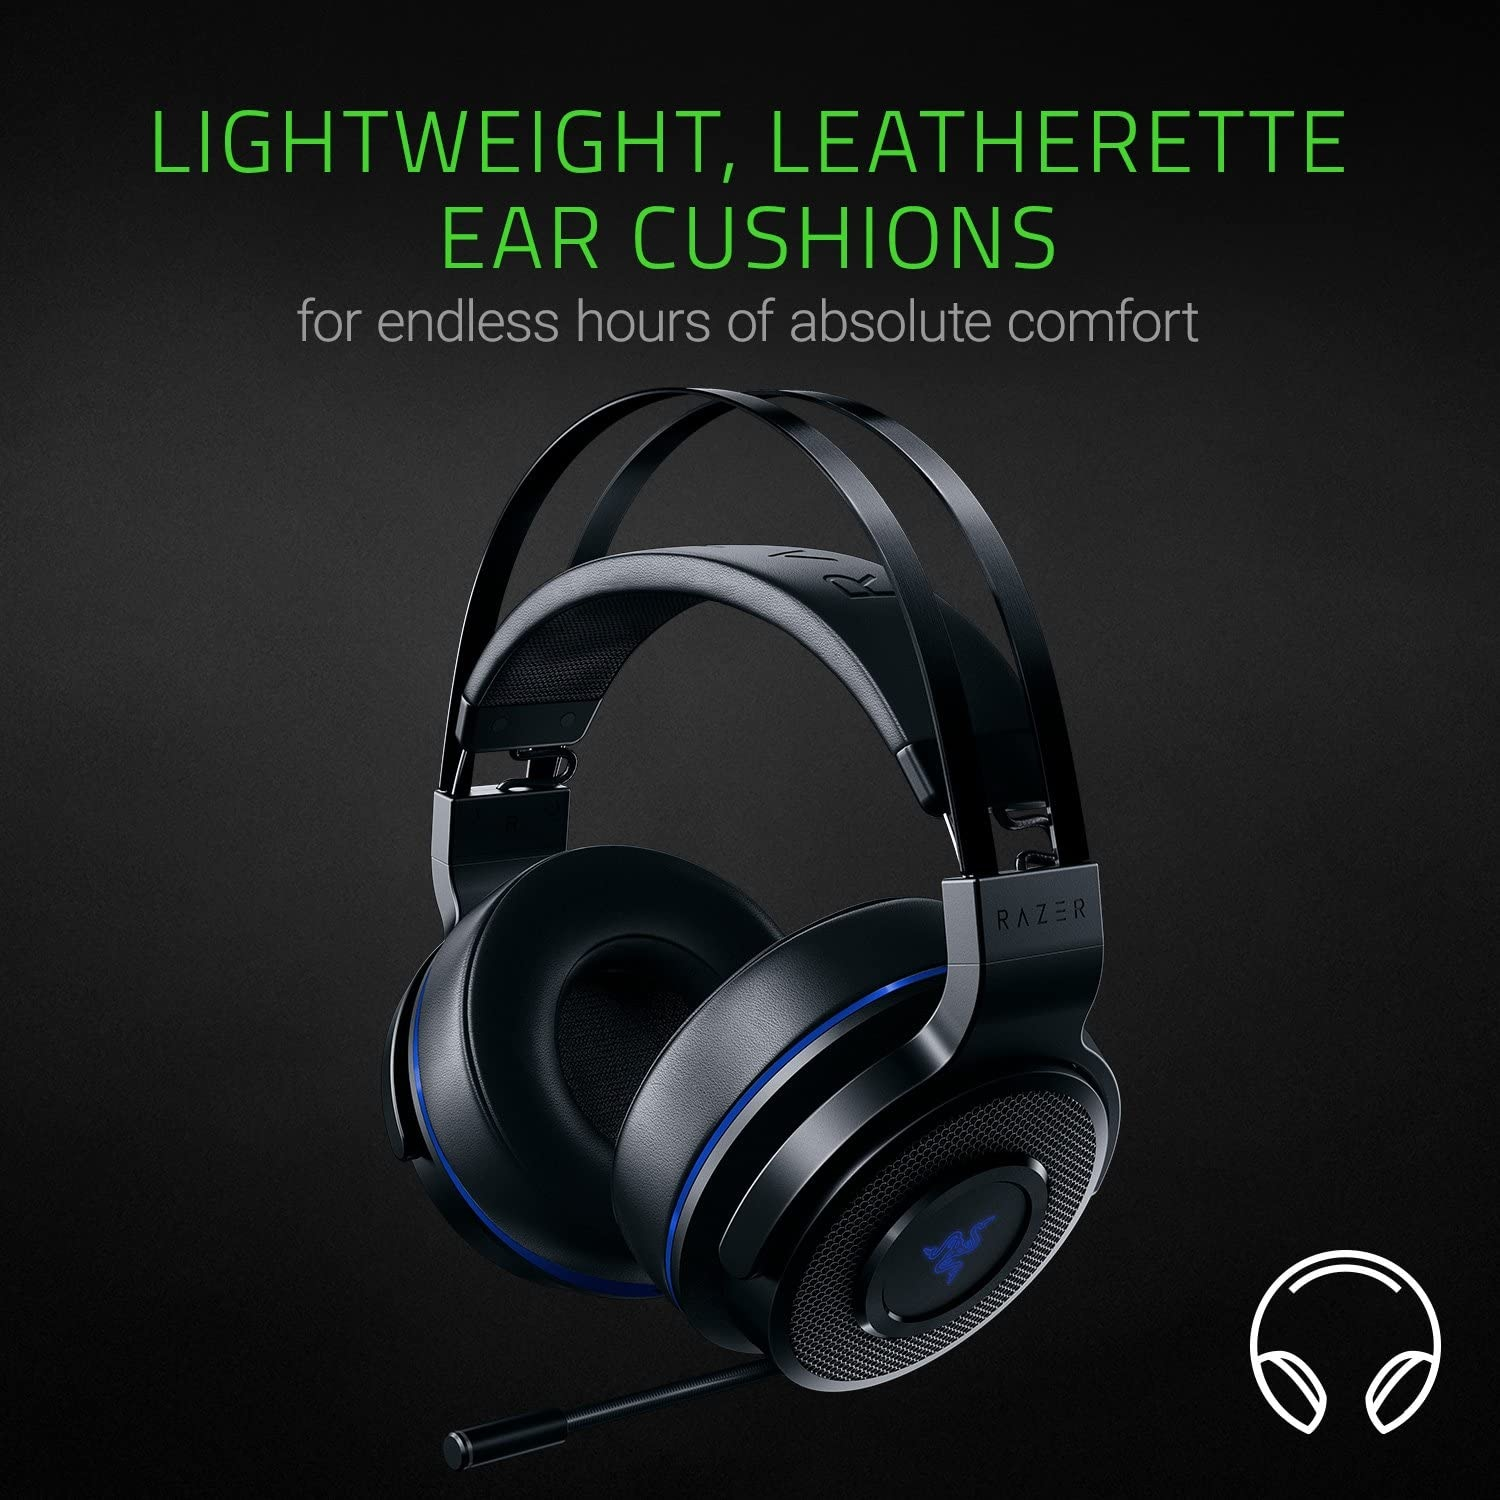 Razer Thresher 7.1 for PlayStation - Wireless Gaming Headset for PS4, PS5 and PC Wireless Headphones, Dolby 7.1 Black - 2